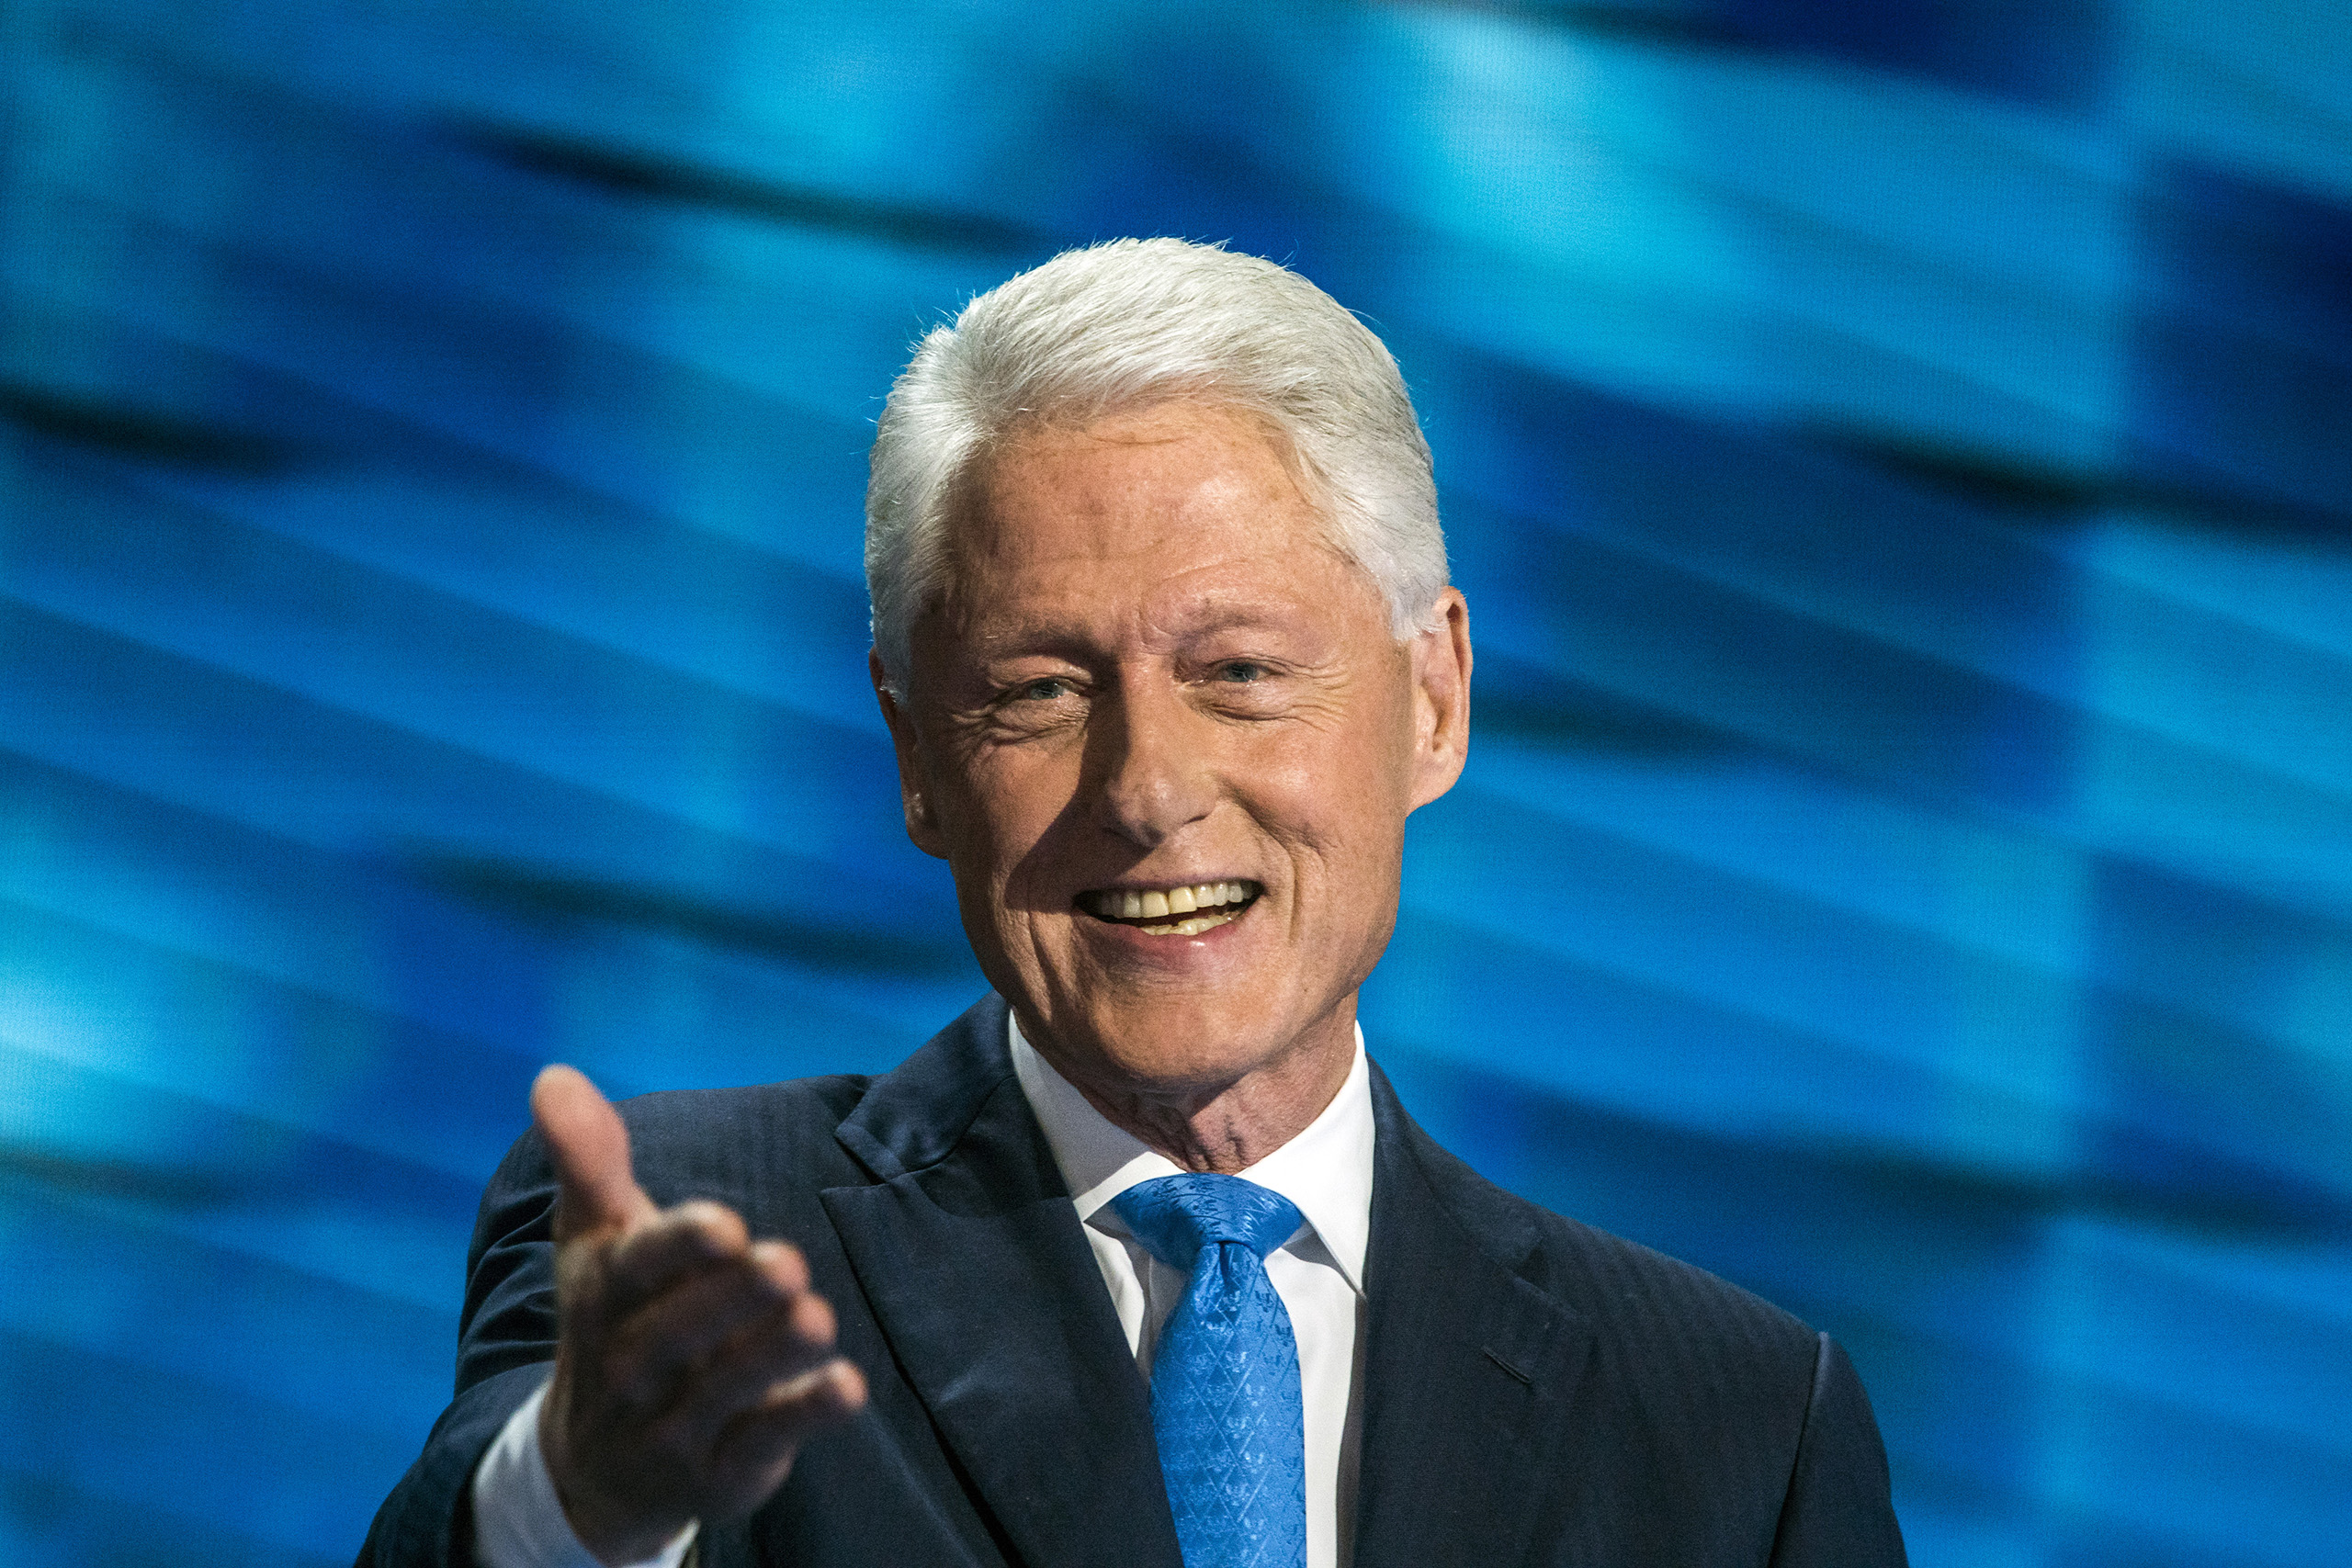 Former US President Bill Clinton speaks on the second day of the Democratic National Convention at the Wells Fargo Center, July 26, 2016 in Philadelphia, Pennsylvania.